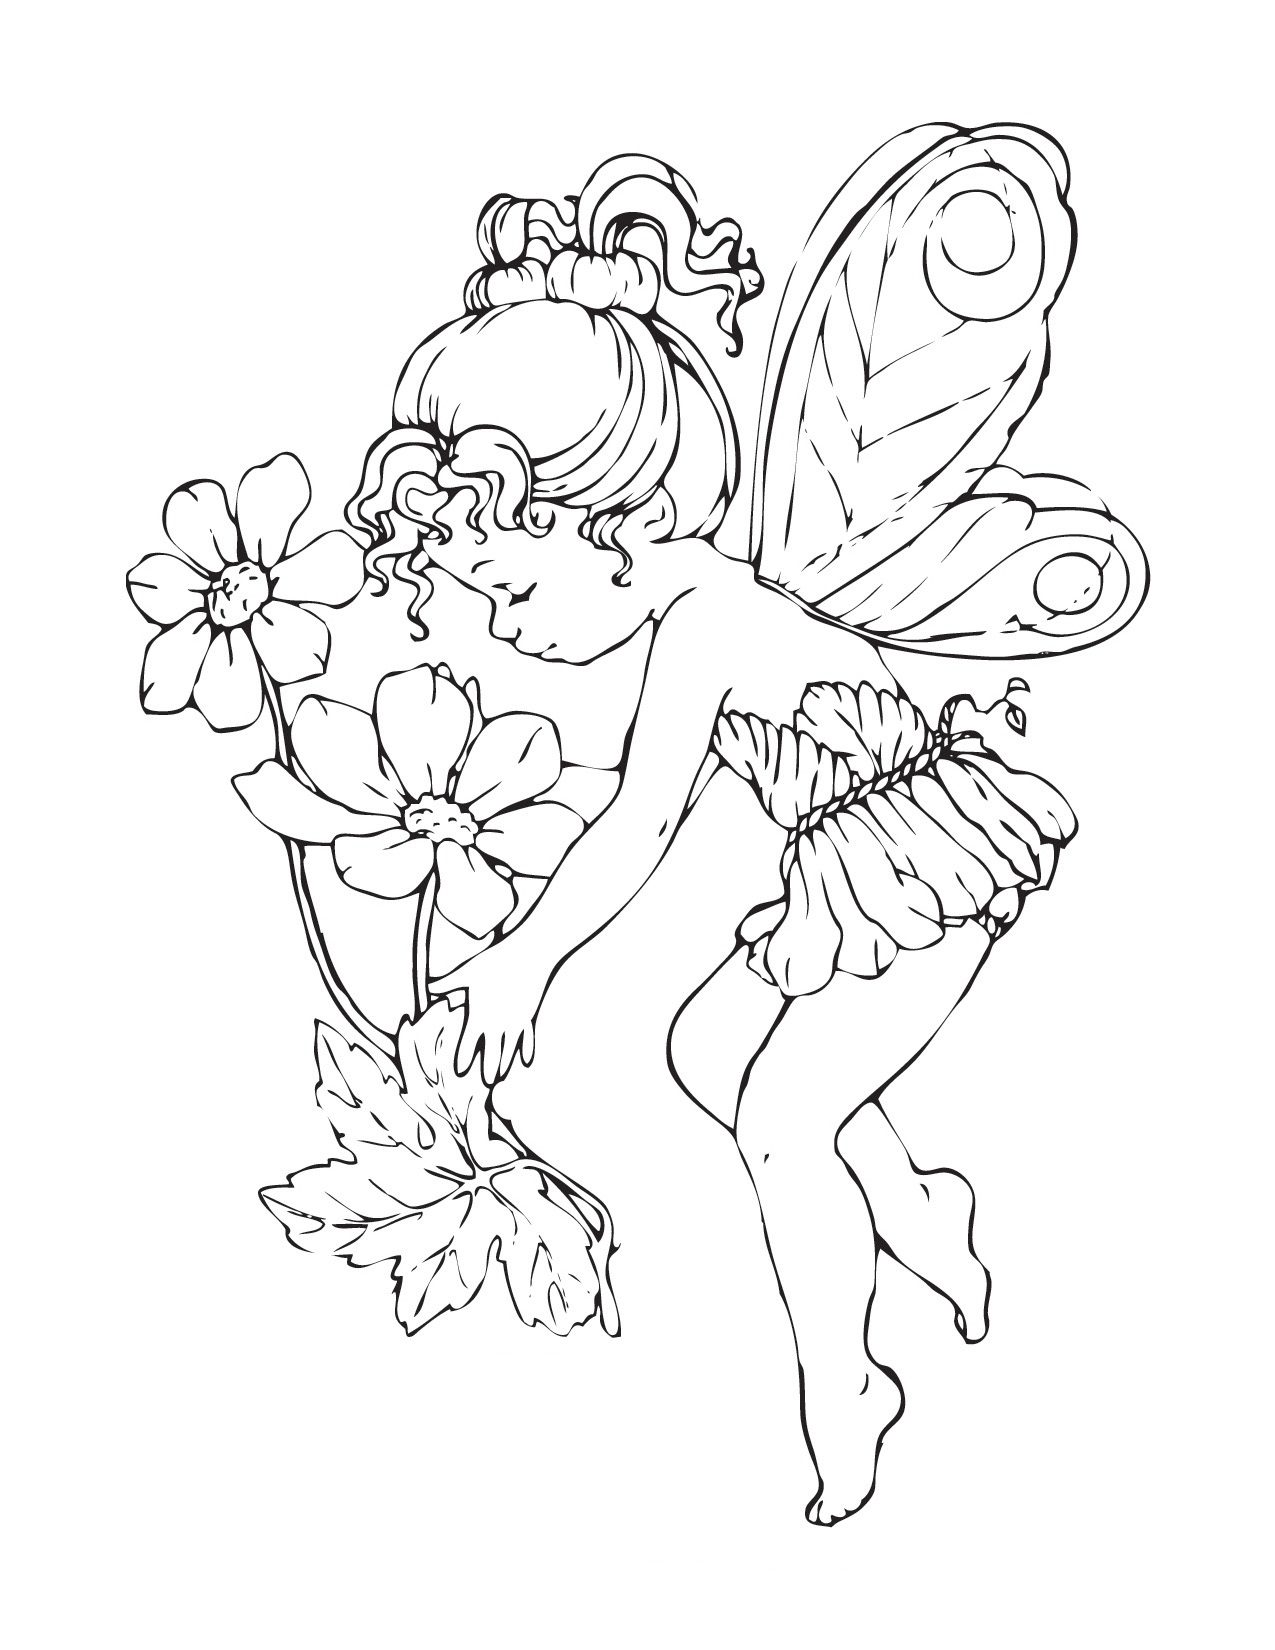 fairy coloring pages for kids - Free Fairy Coloring Pages